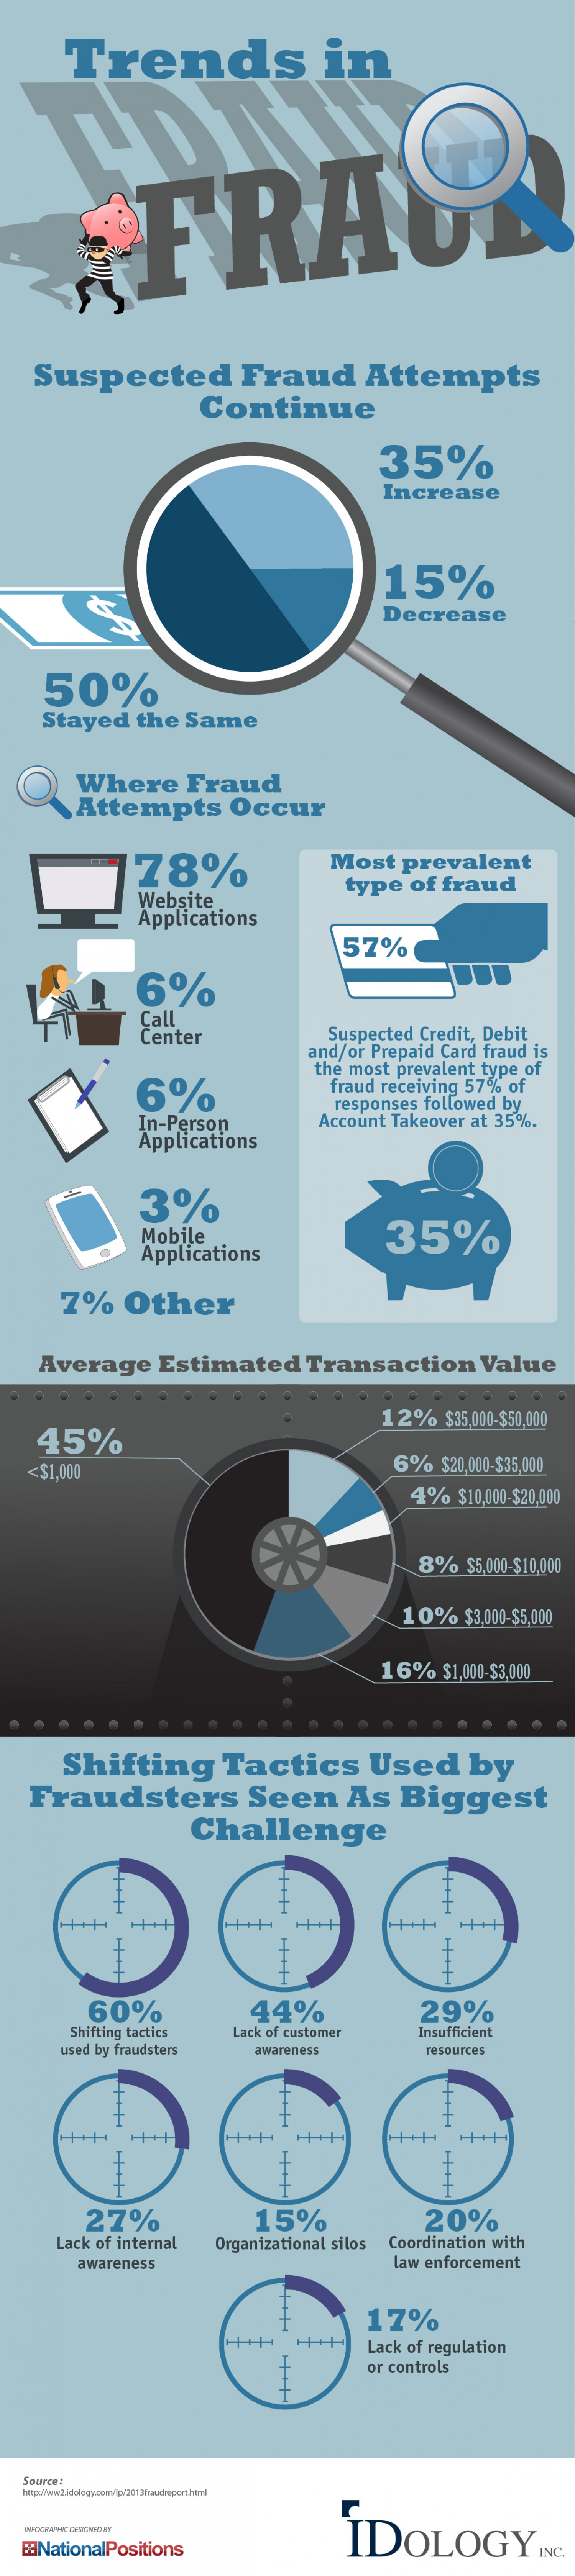 Trends in Fraud Infographic